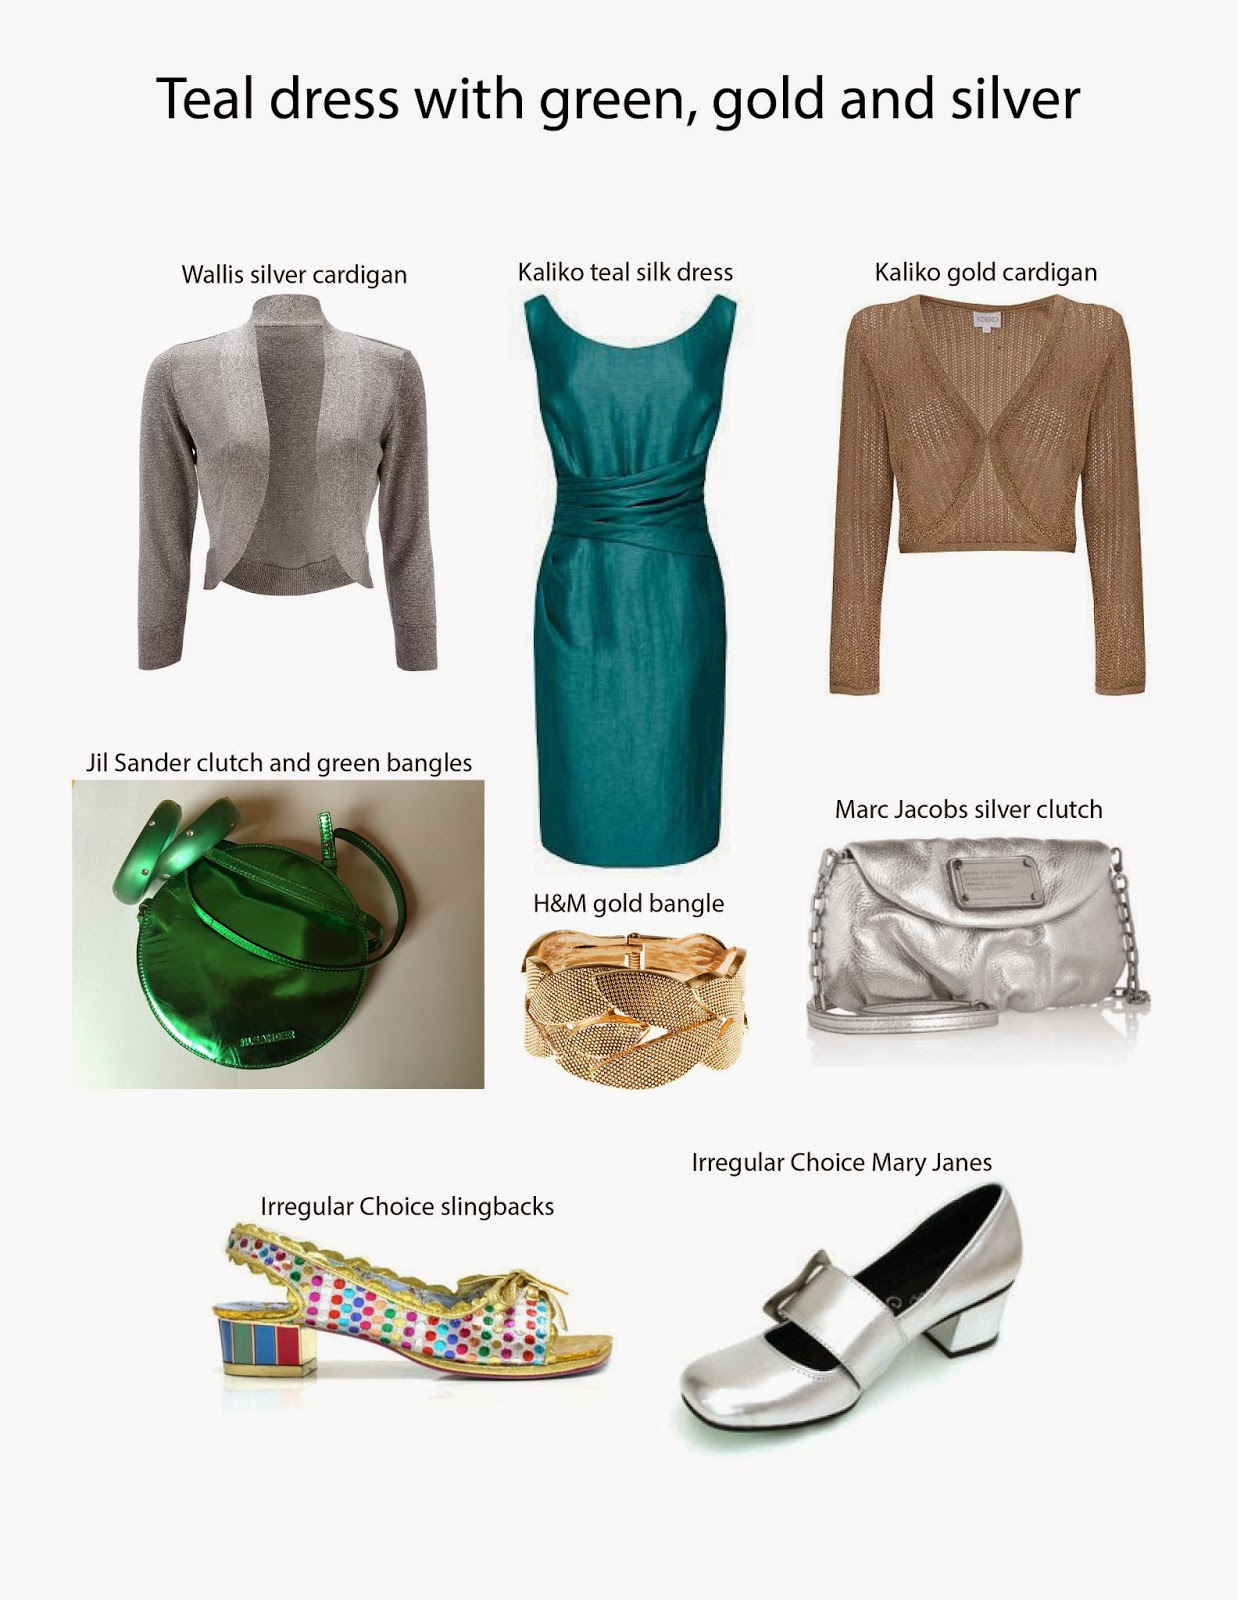 Cocktail Party Outfit Ideas Part - 35: Kaffesoesteru0027s Teal Kaliko Dress With Accessory Ideas